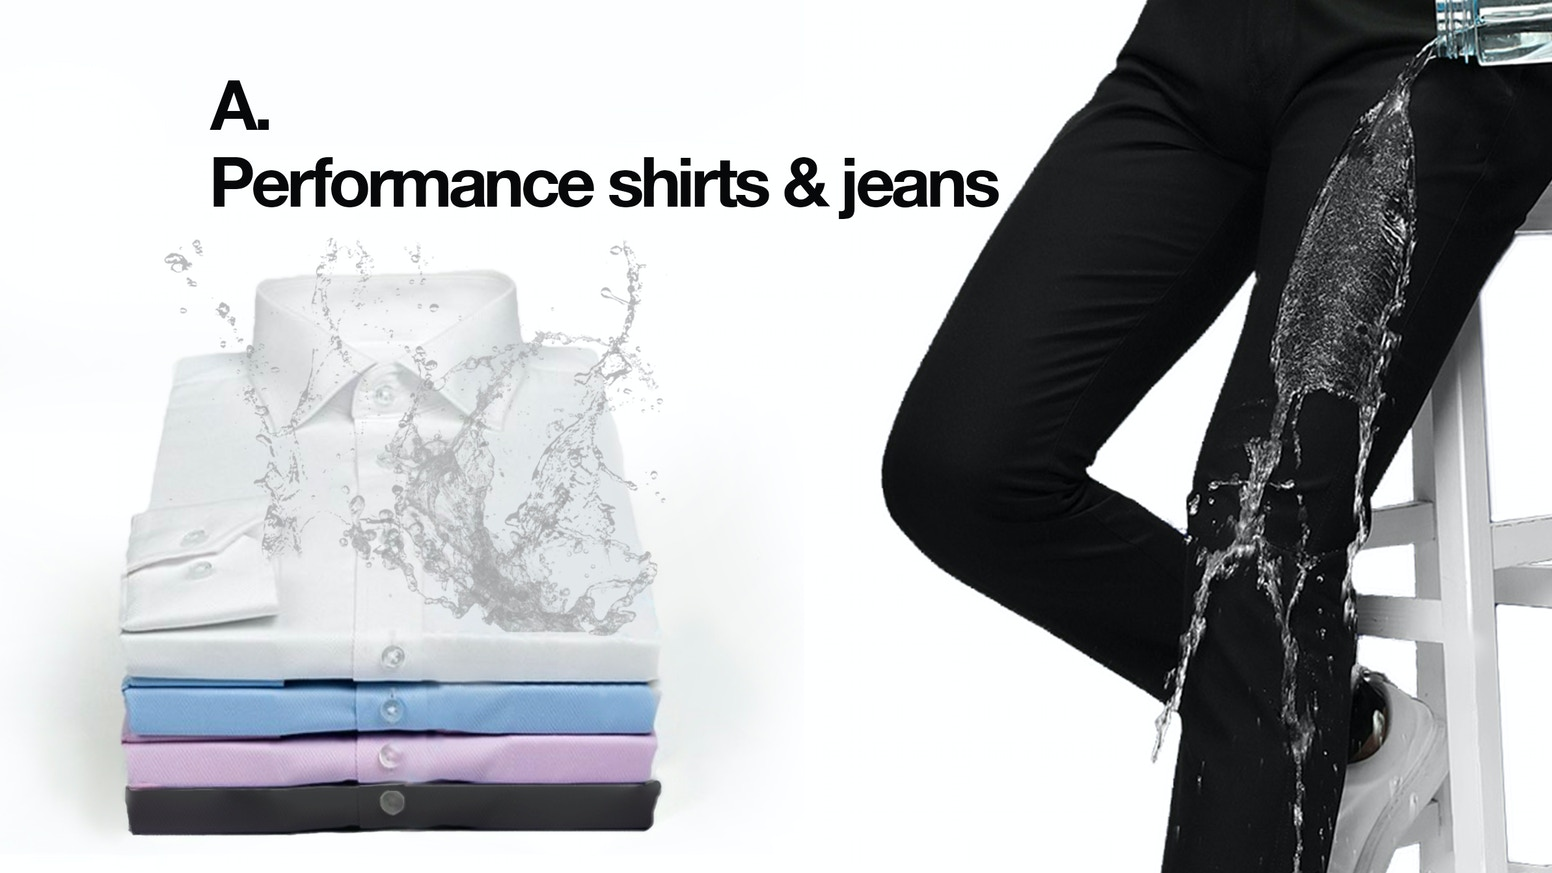 2f2ee52685 The fresh take on shirts   jeans for work and everyday wear. Stay dry even